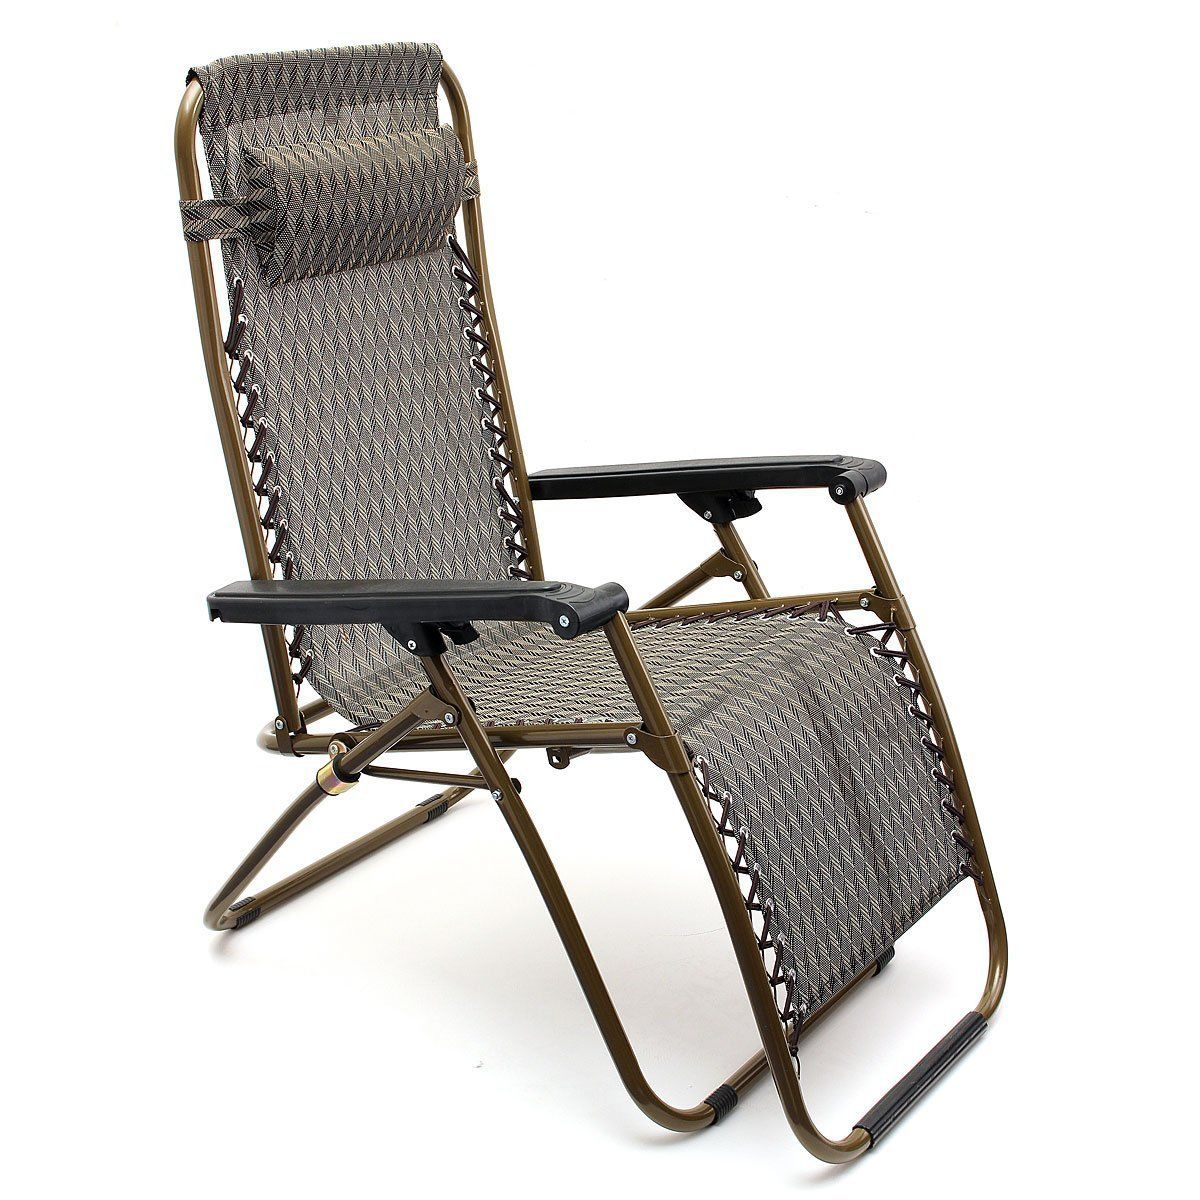 Poolside Chairs 2zero Gravity Folding Chair With Cup Tray Recliner